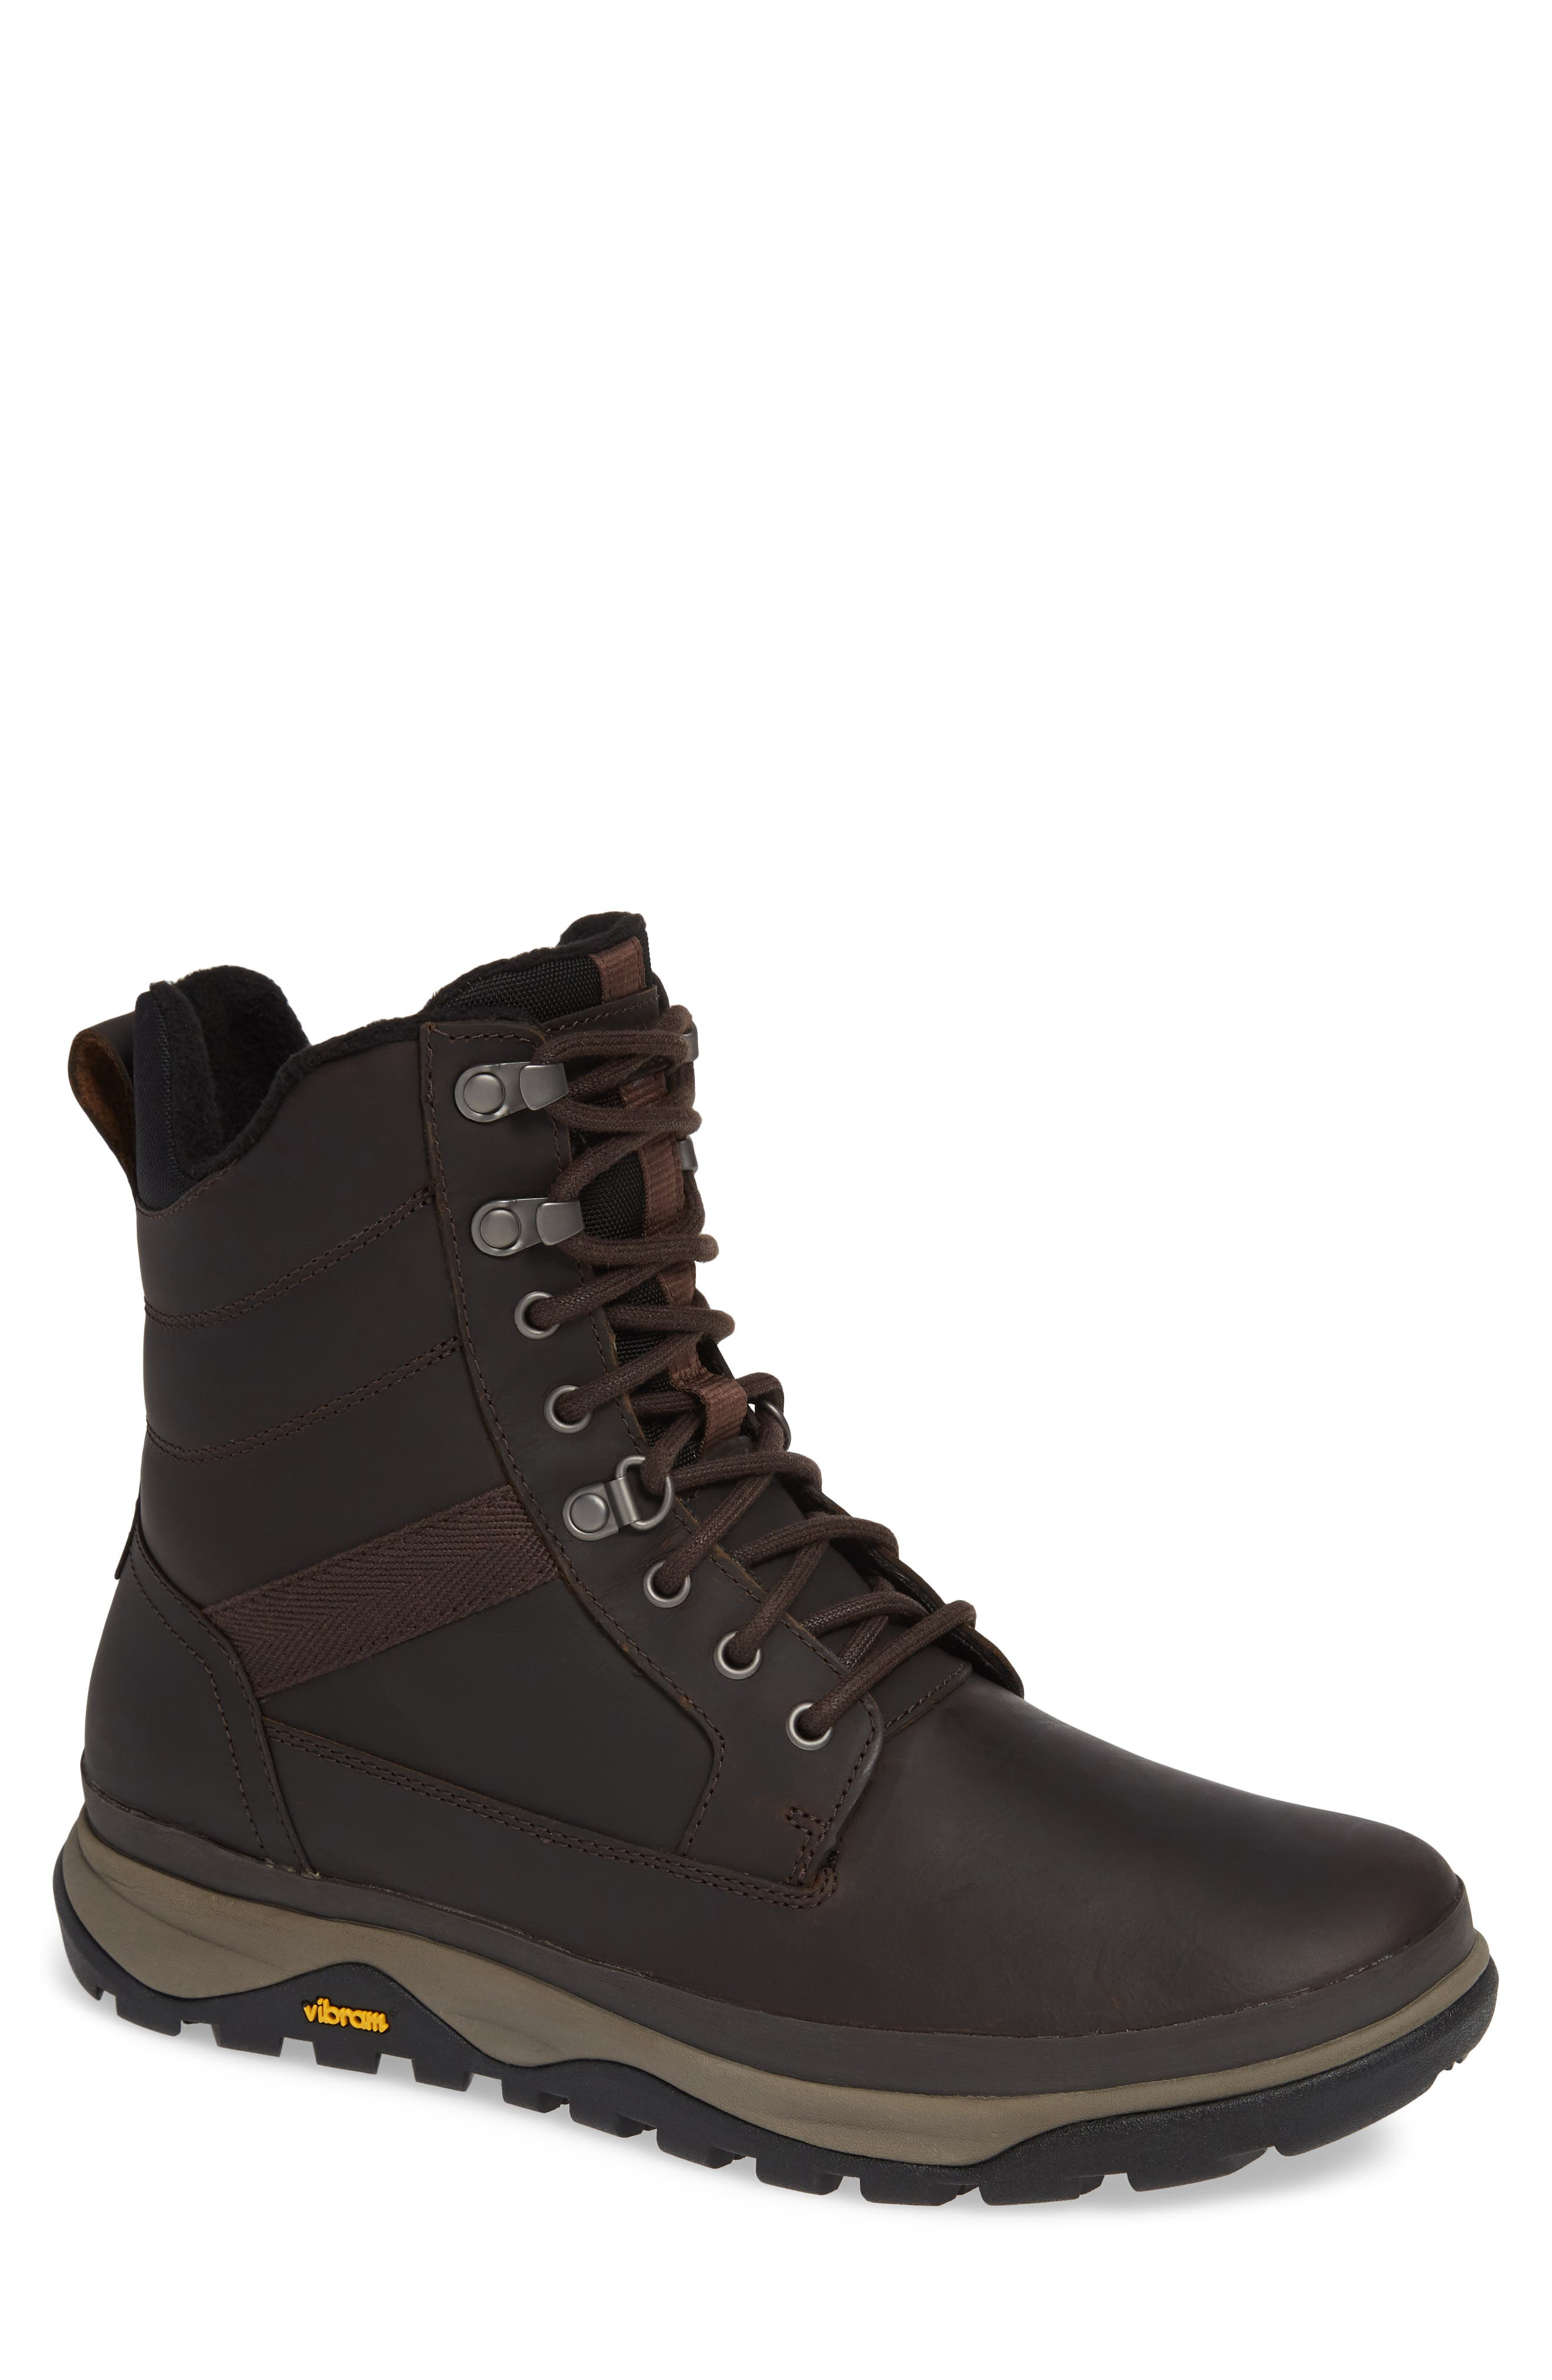 Merrell Tremblant Insulated Waterproof Boot- Brown